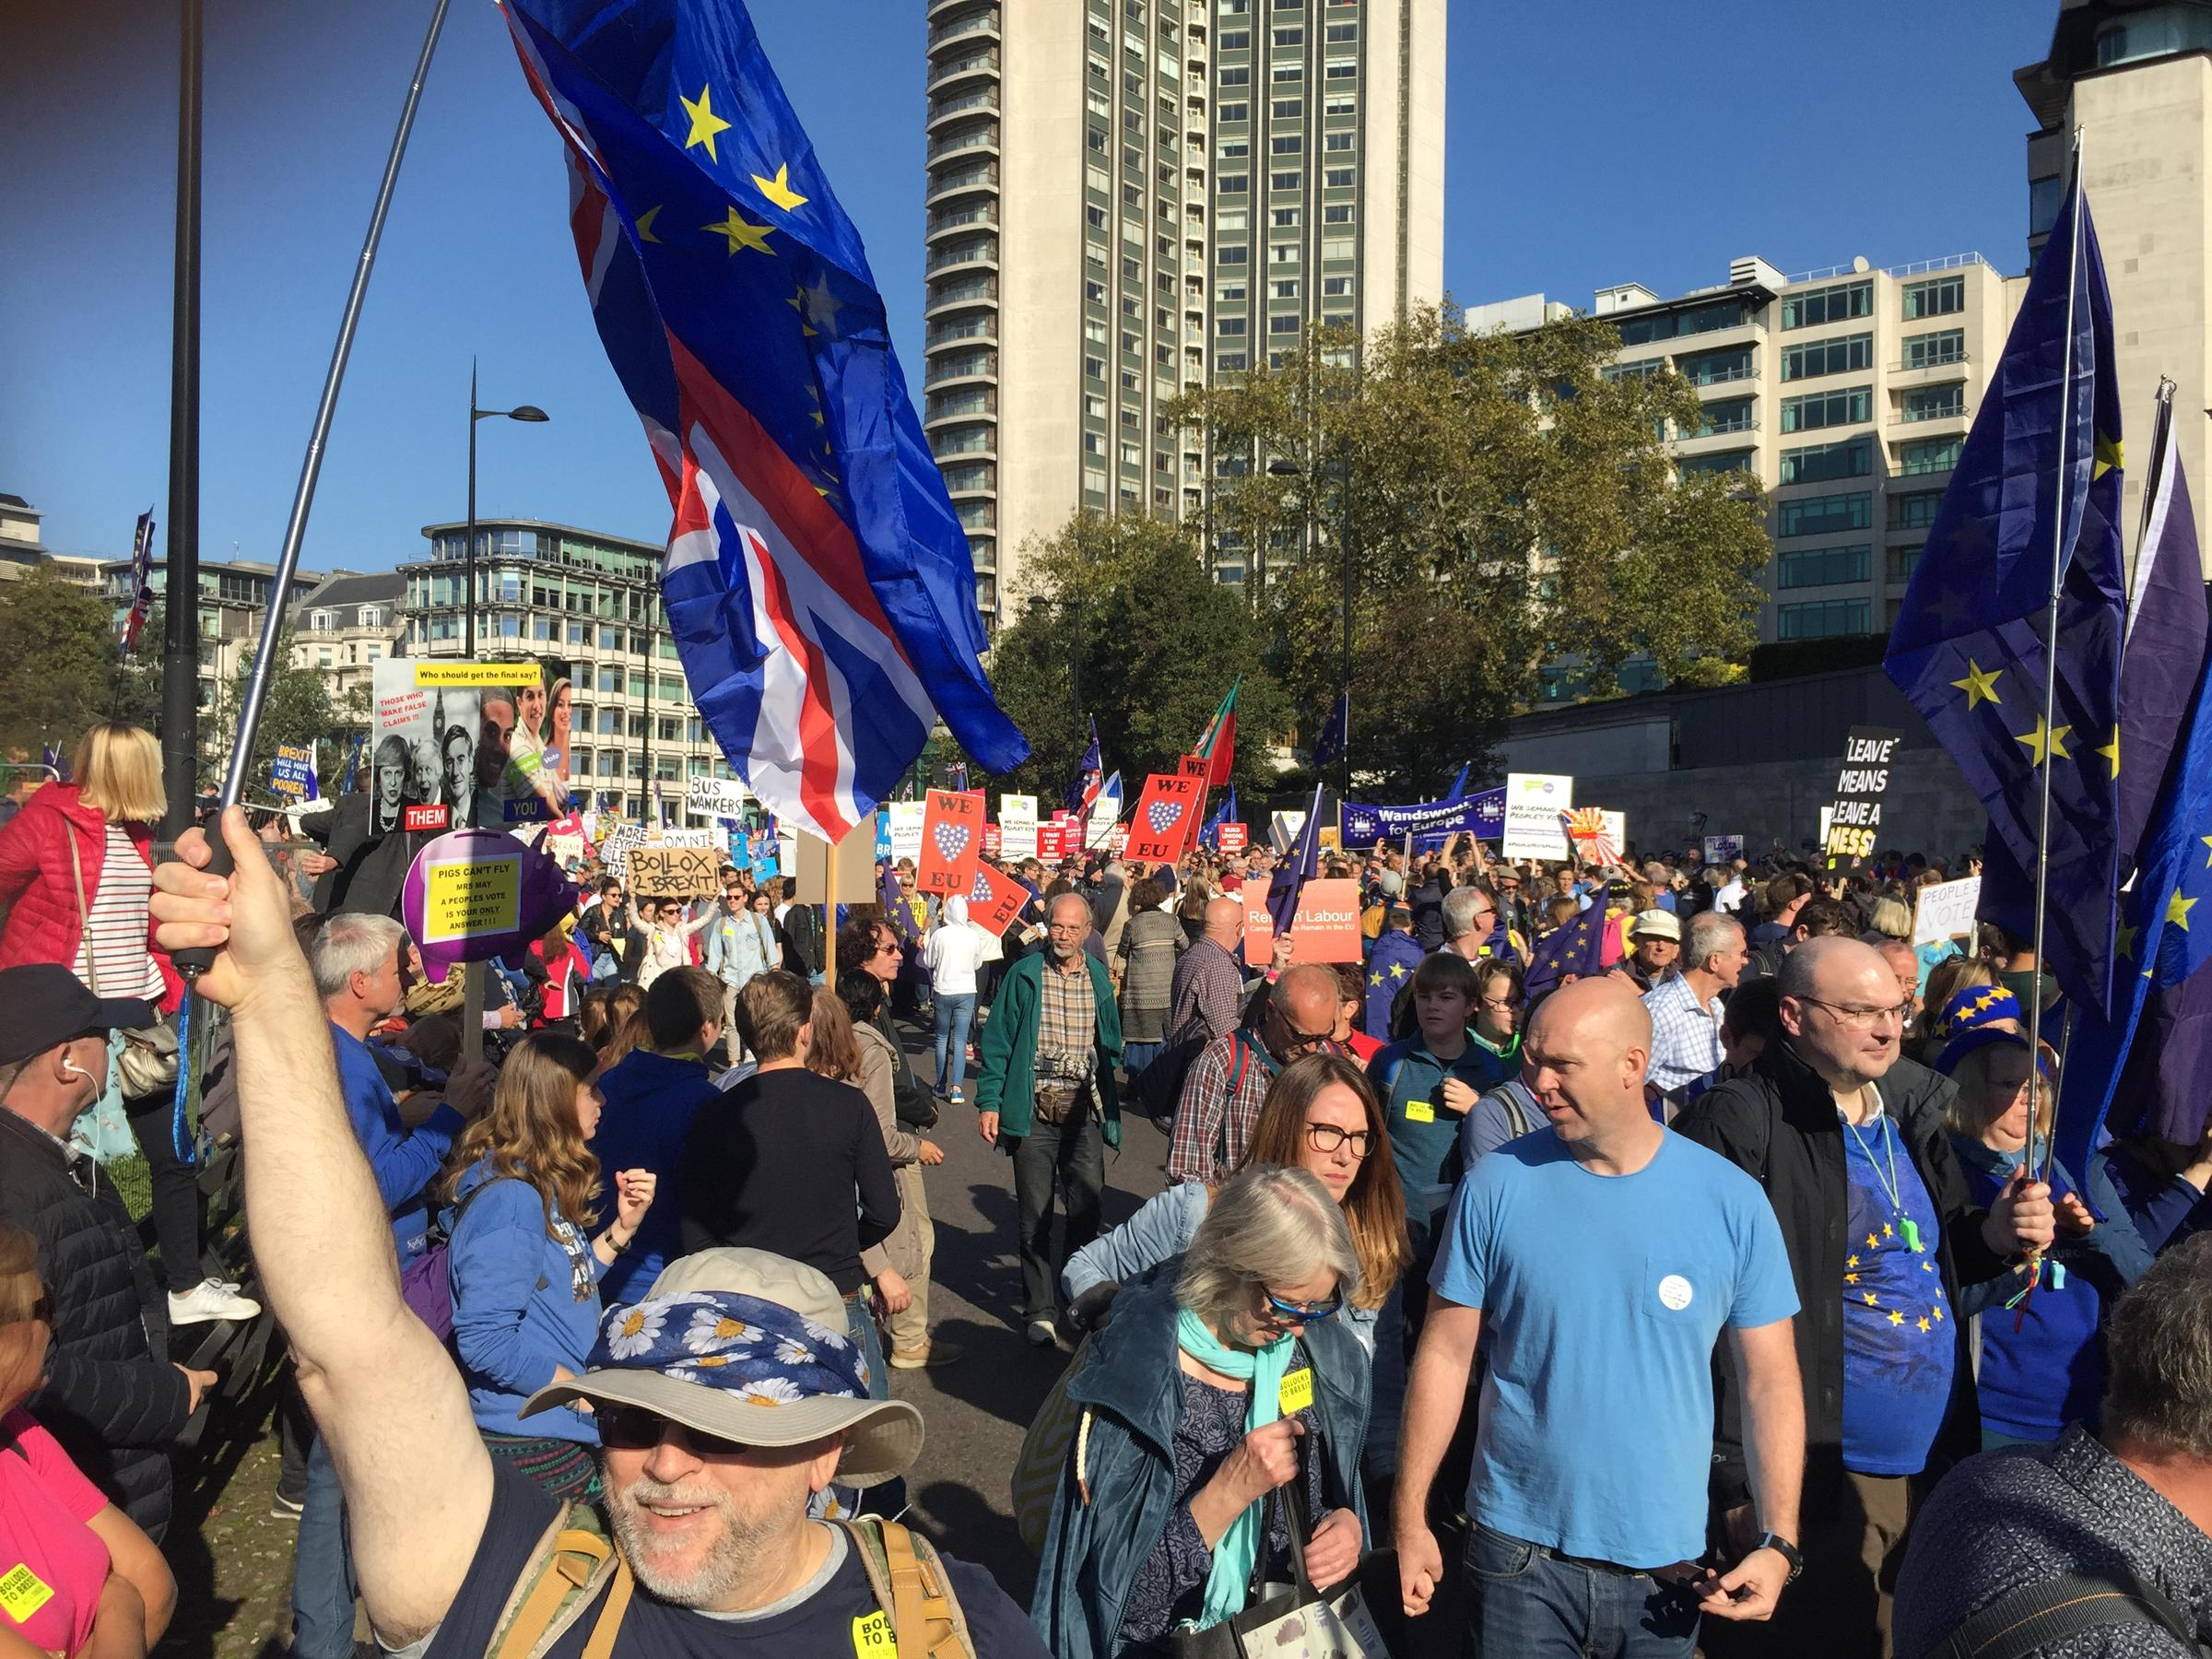 Hundreds of thousands march in London demanding a second Brexit vote